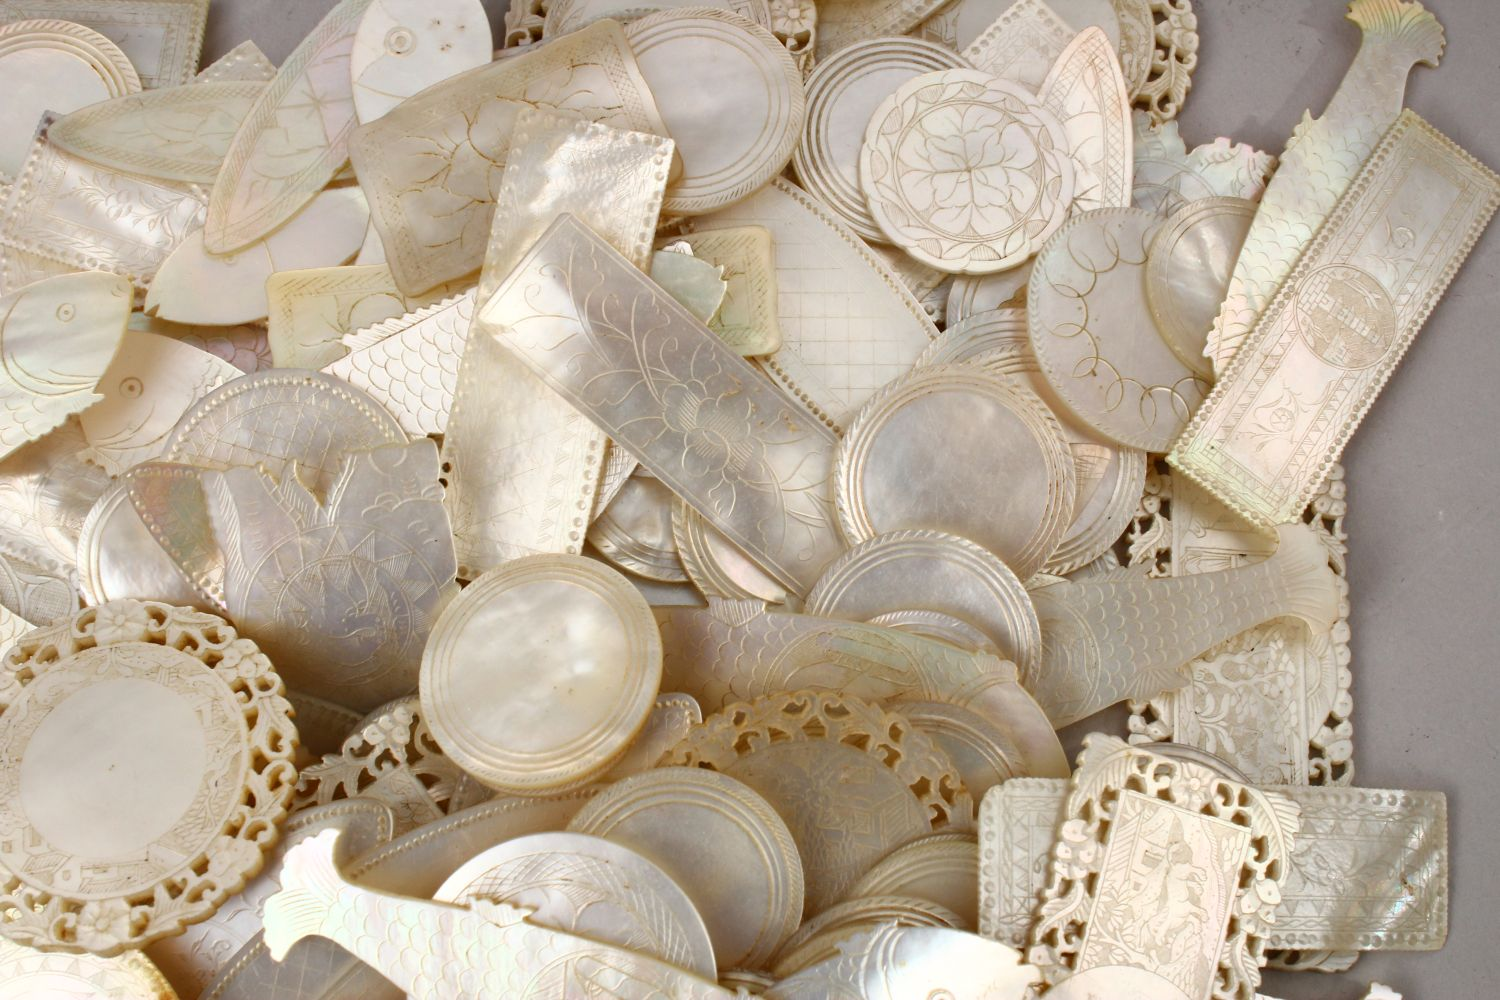 A QUANTITY OF 19TH CENTURY CHINESE CARVED MOTHER OF PEARL GAME COUNTERS, various styles an sizes. - Image 7 of 9